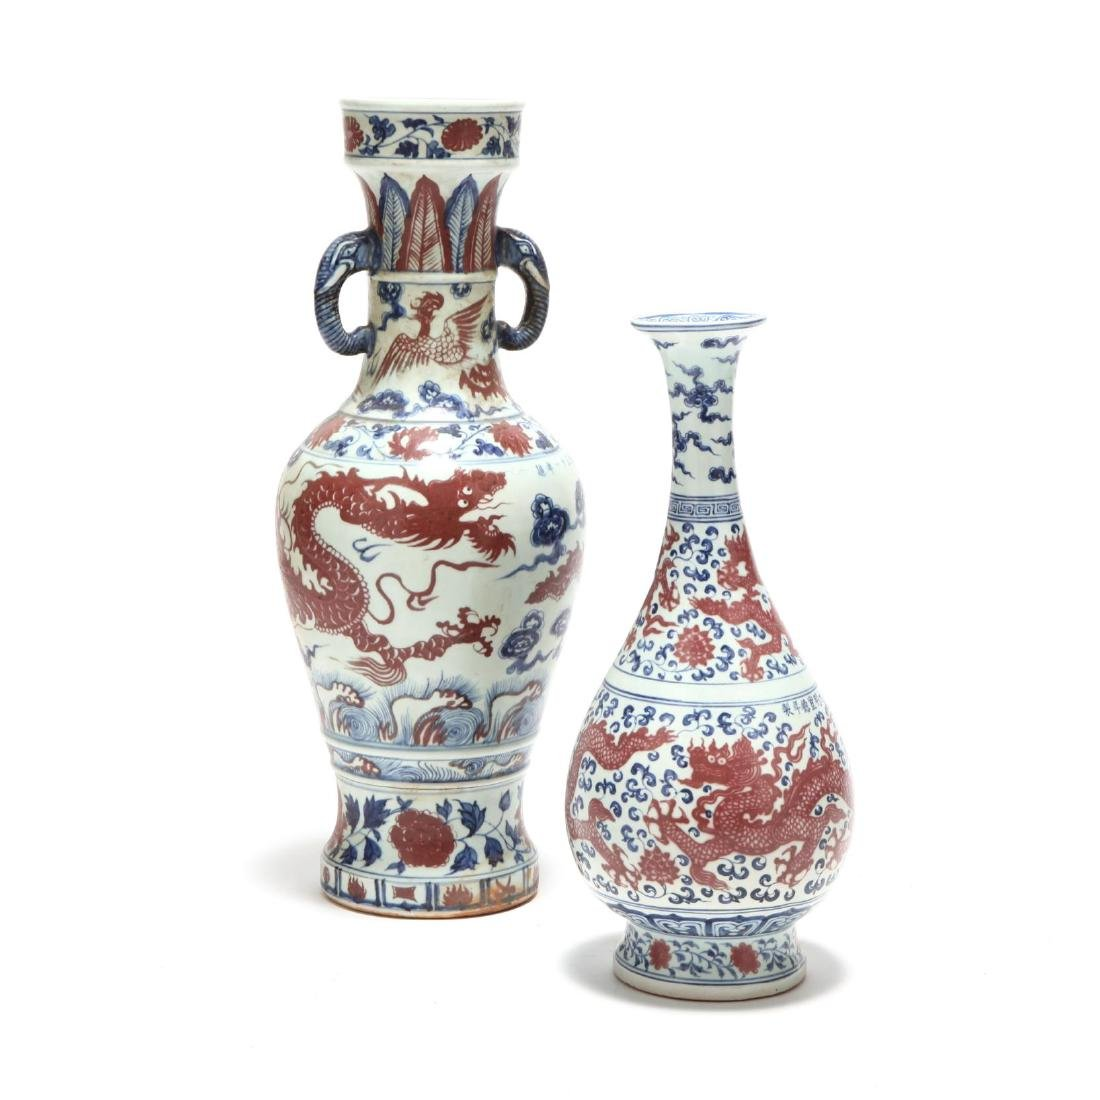 Two Chinese Blue and Red Vases